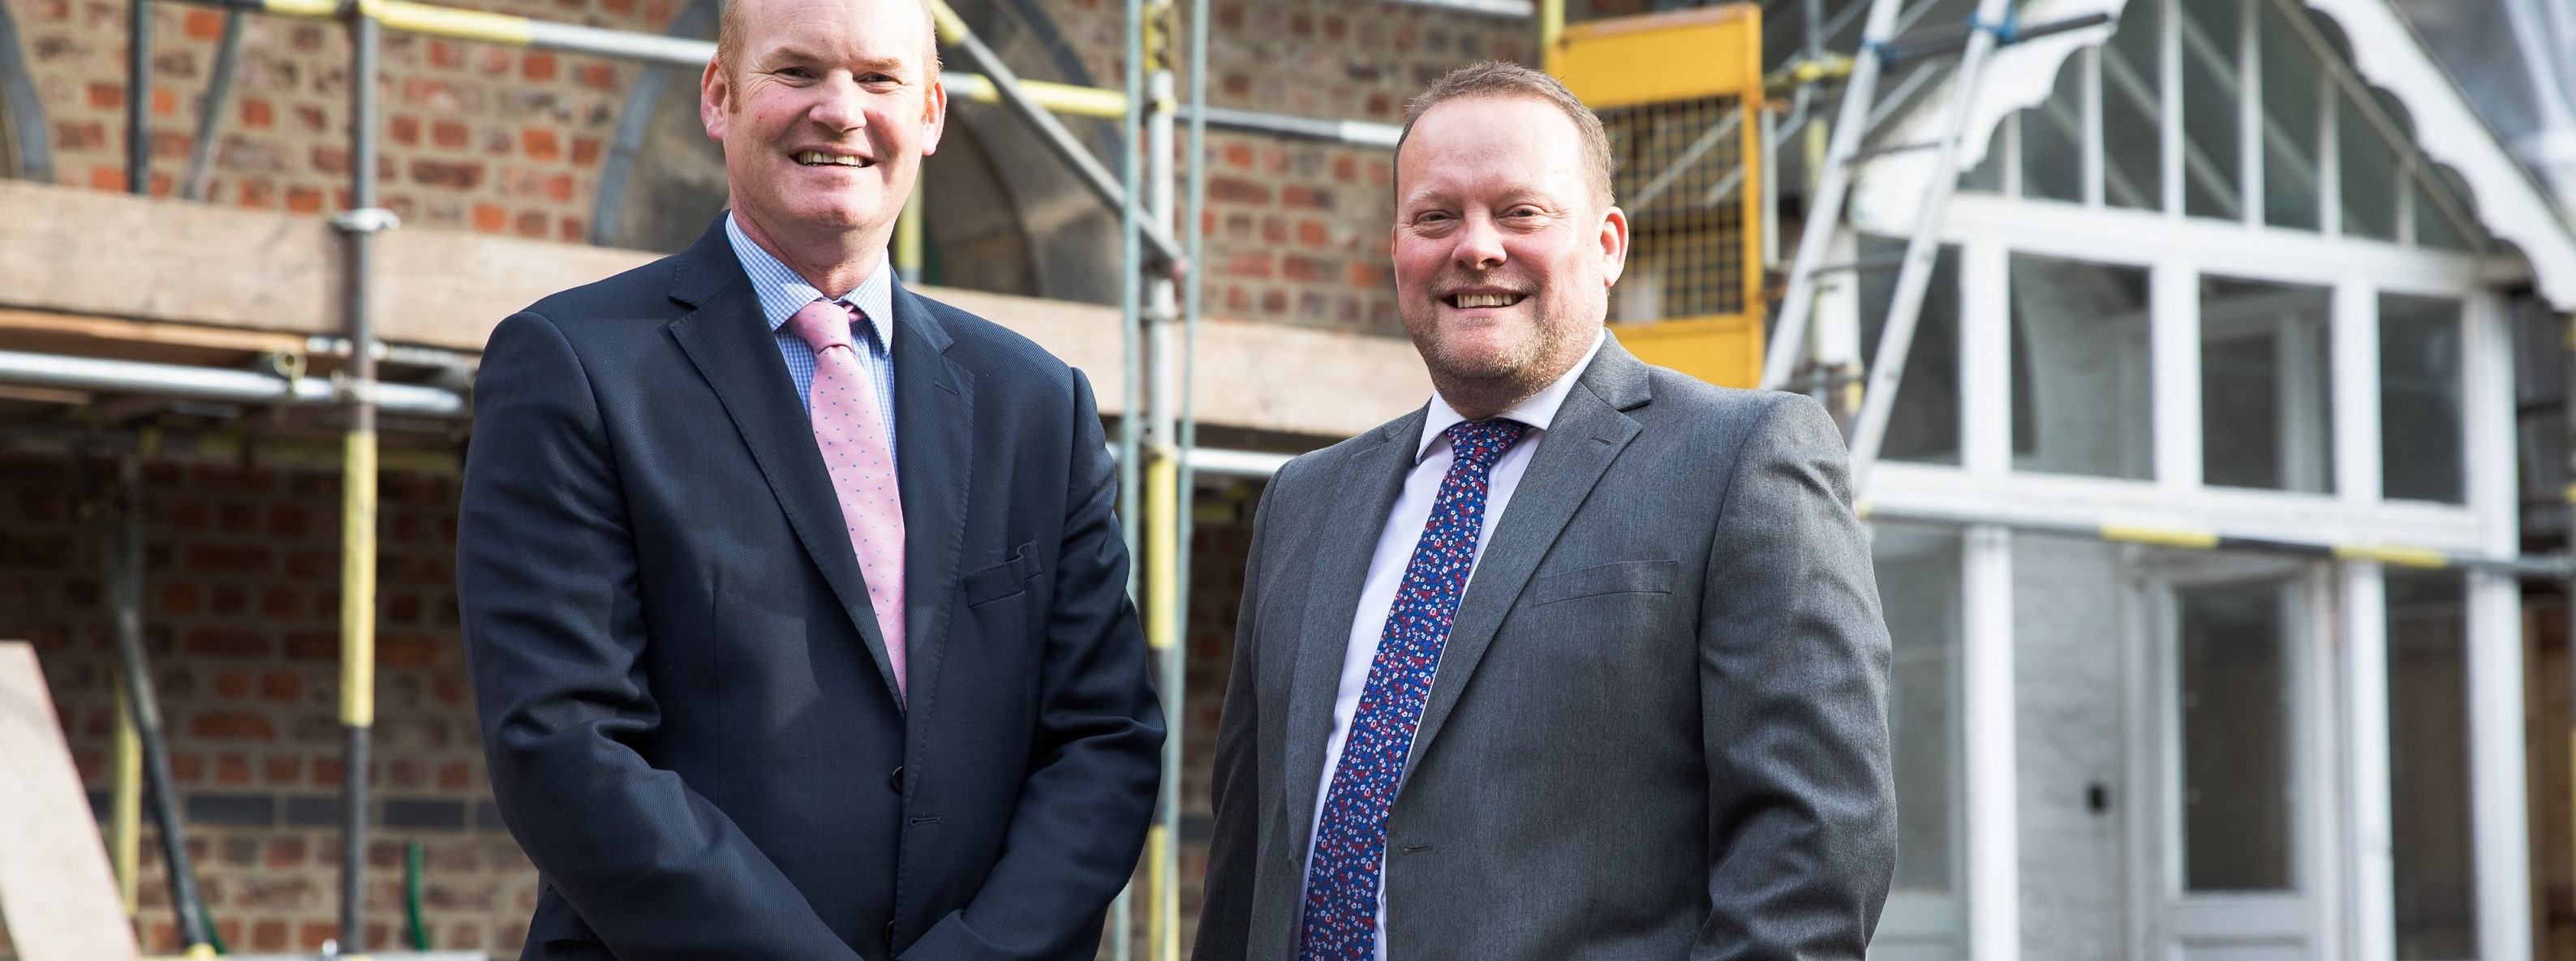 Alastair Gill, Northminster and Tim Cross, Langleys Solicitors